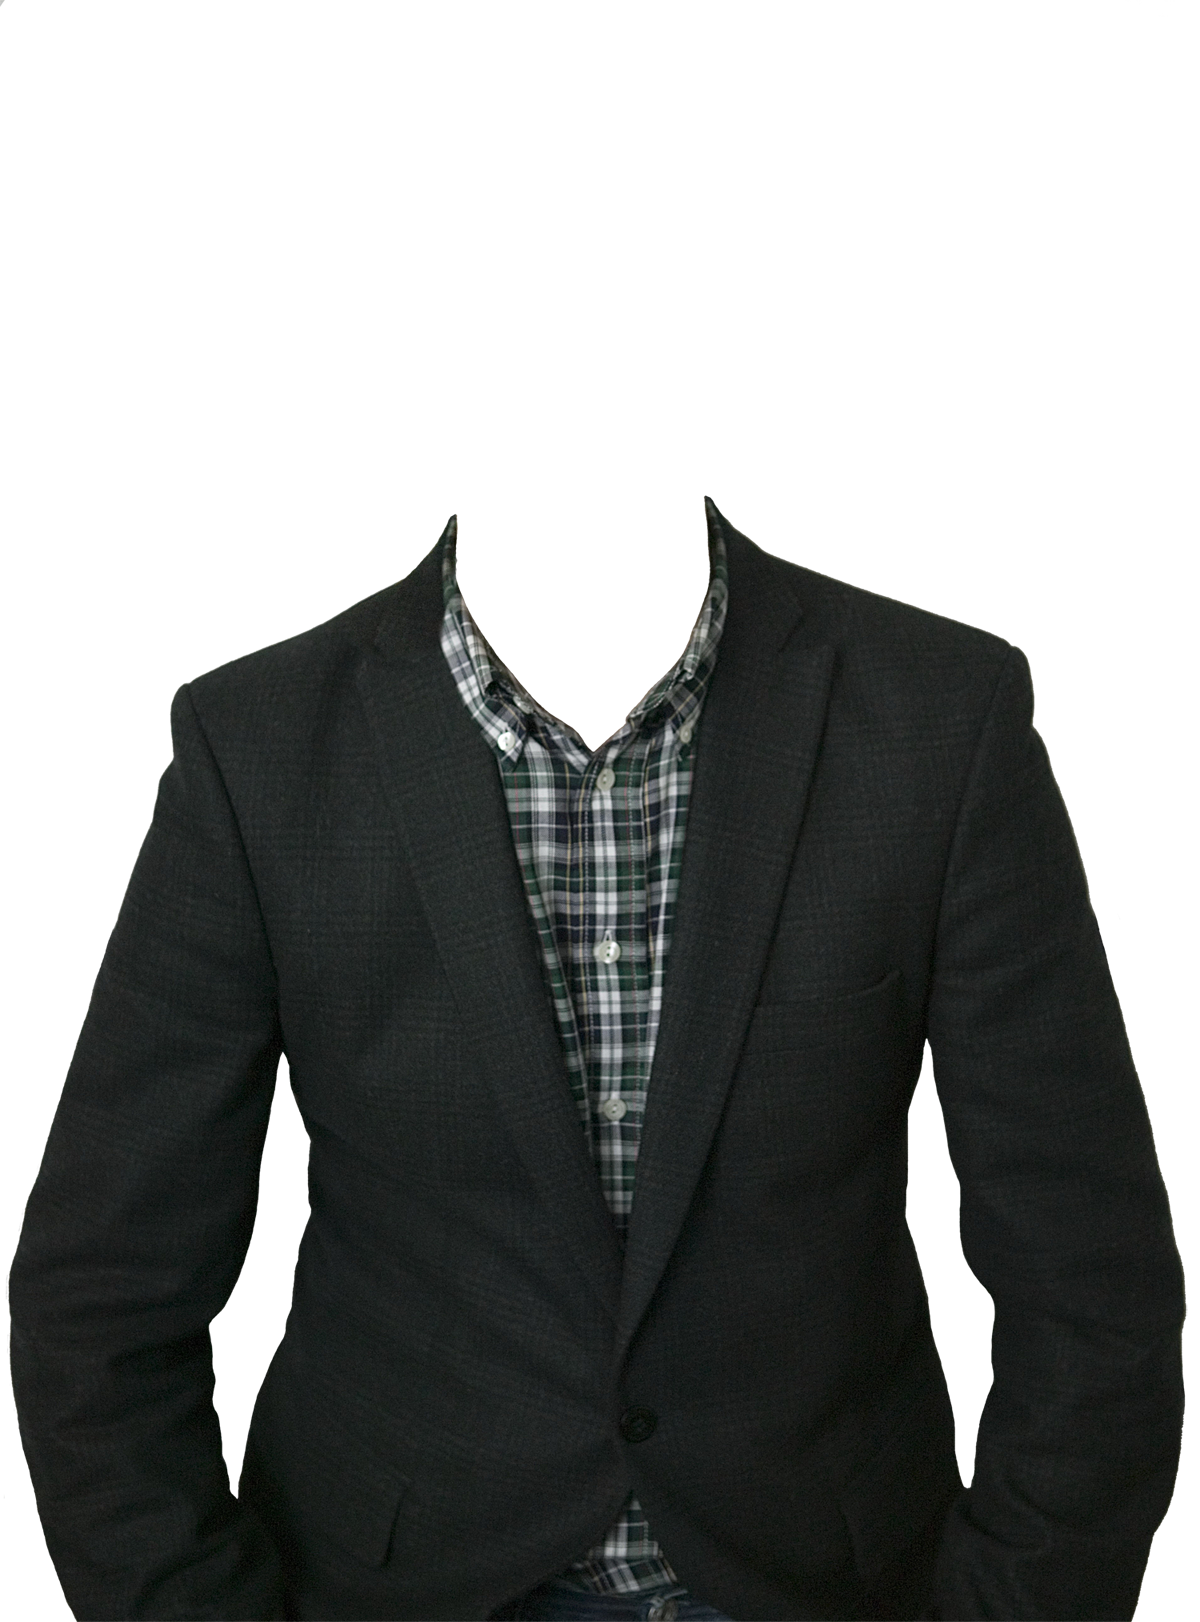 Suit PNG image image with transparent background